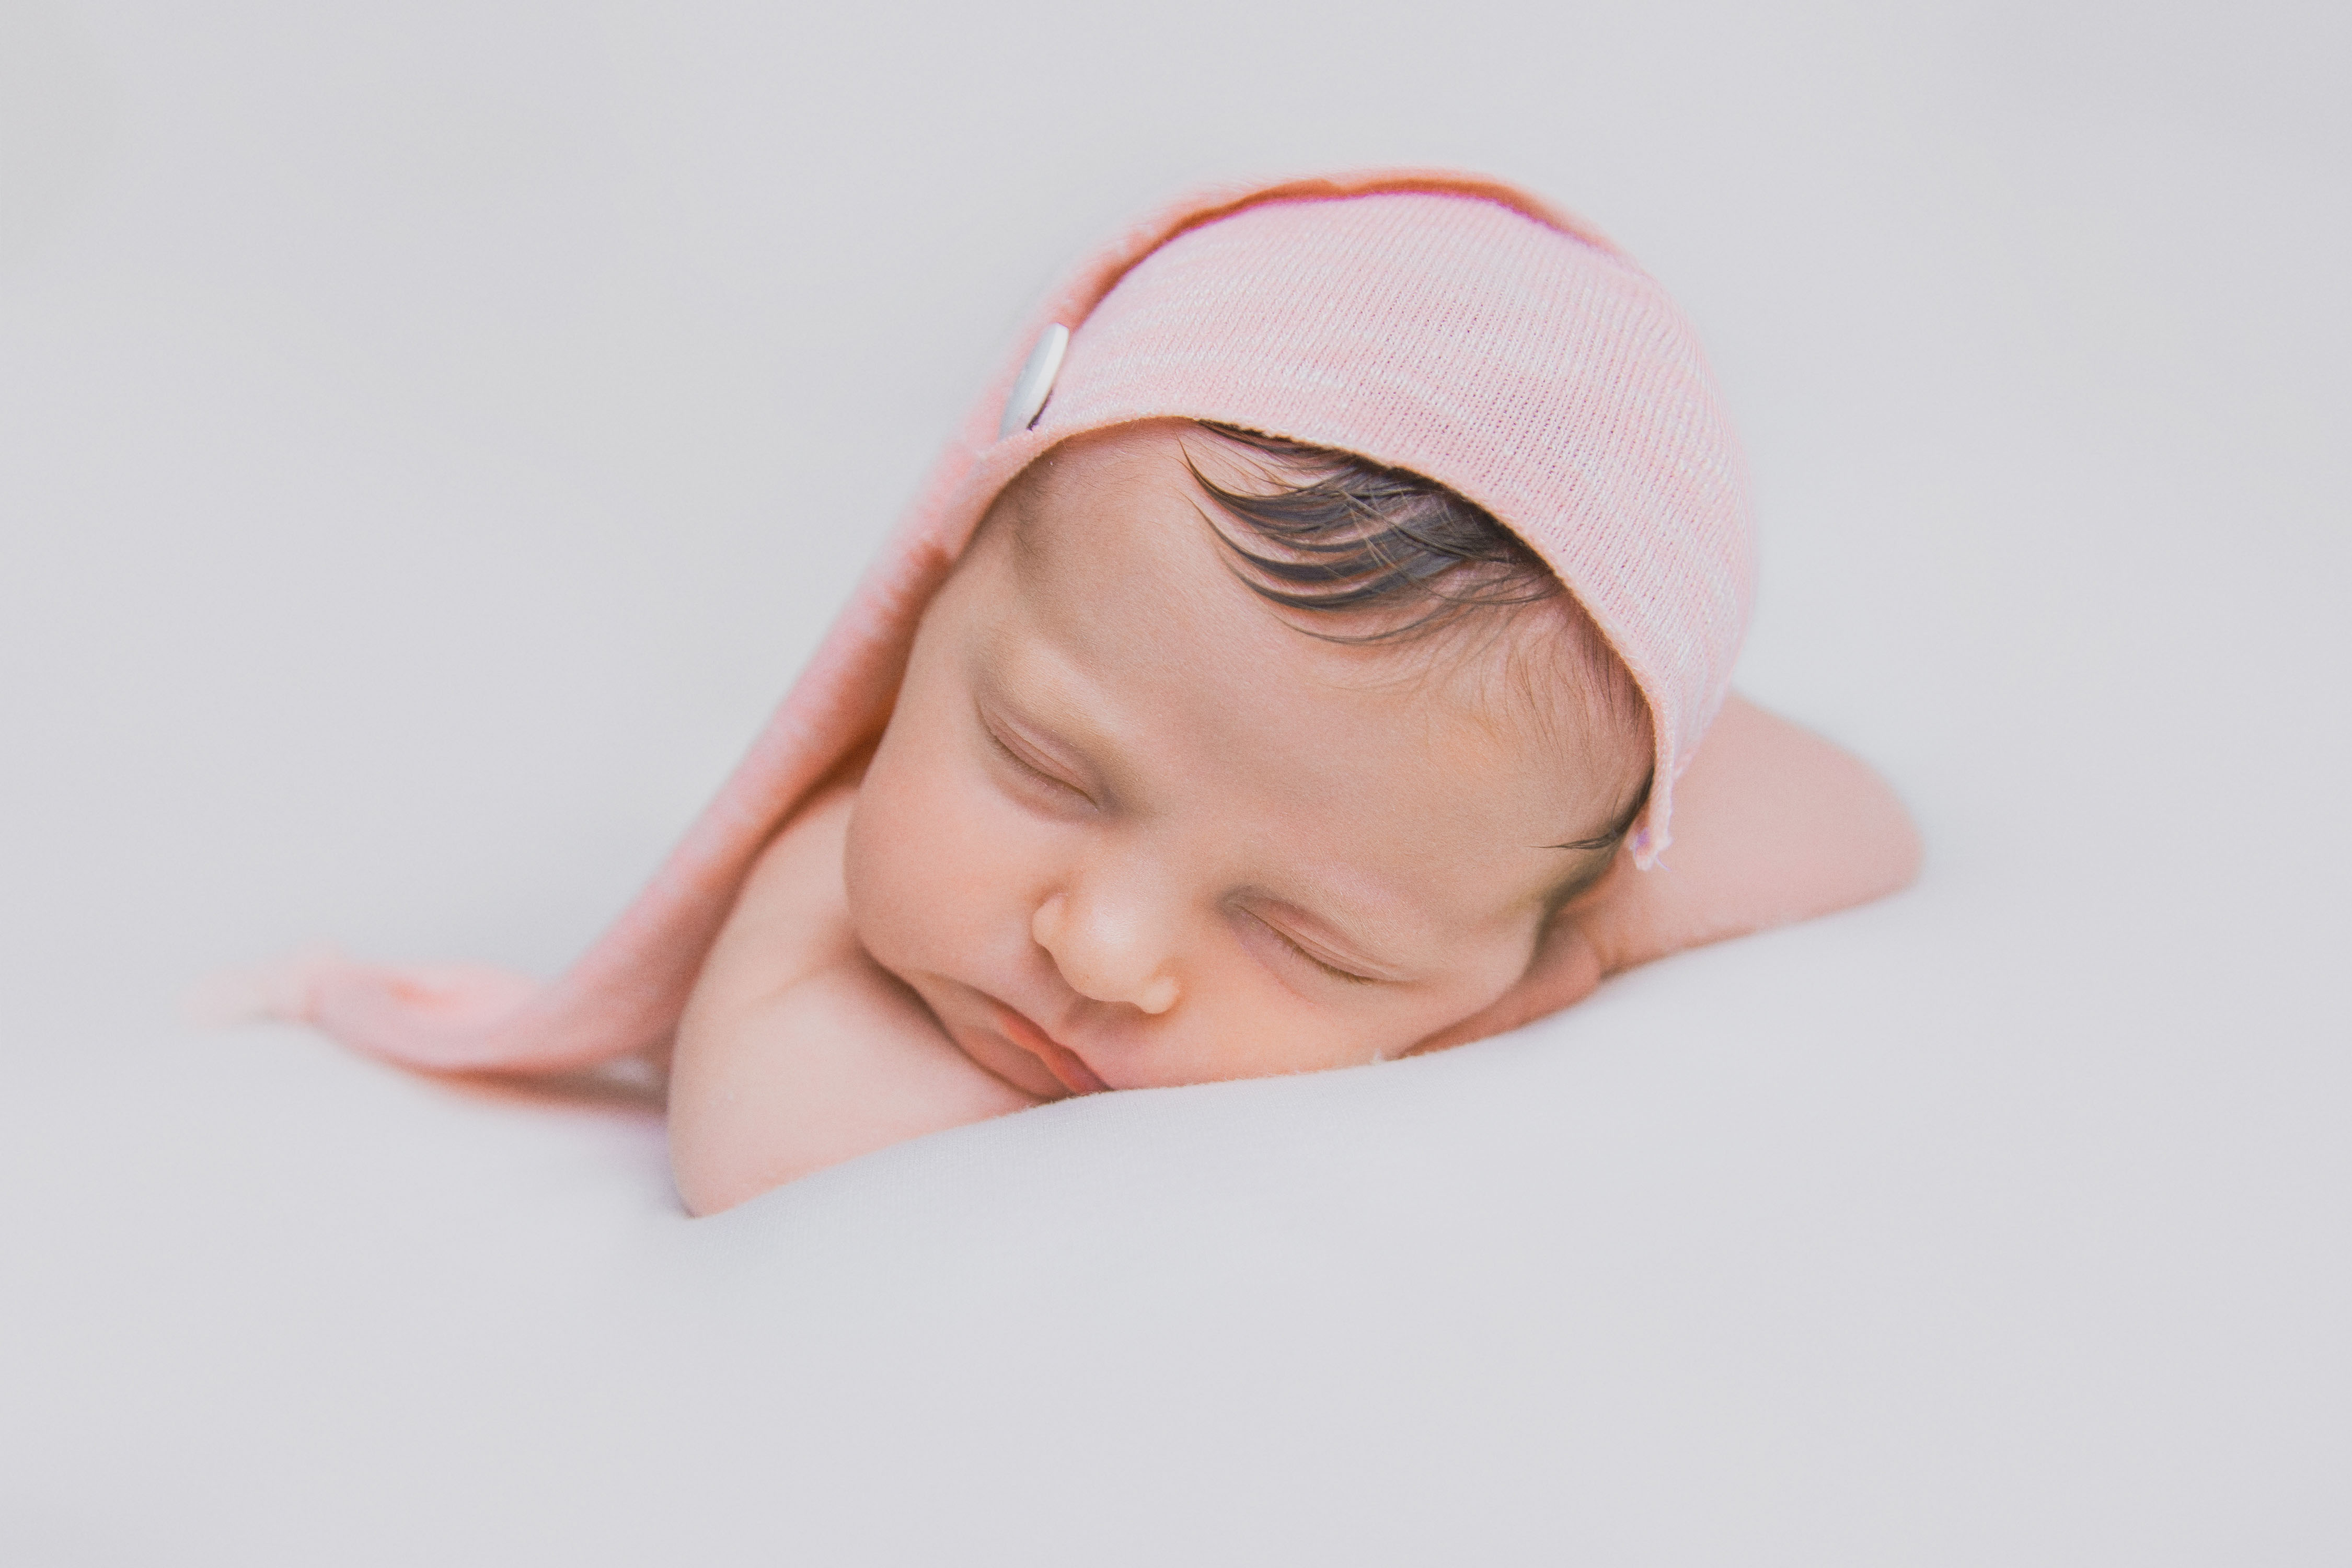 Newborn Photography Essex, Baby, Photography, photoshoot, family, photo, newborn, new baby